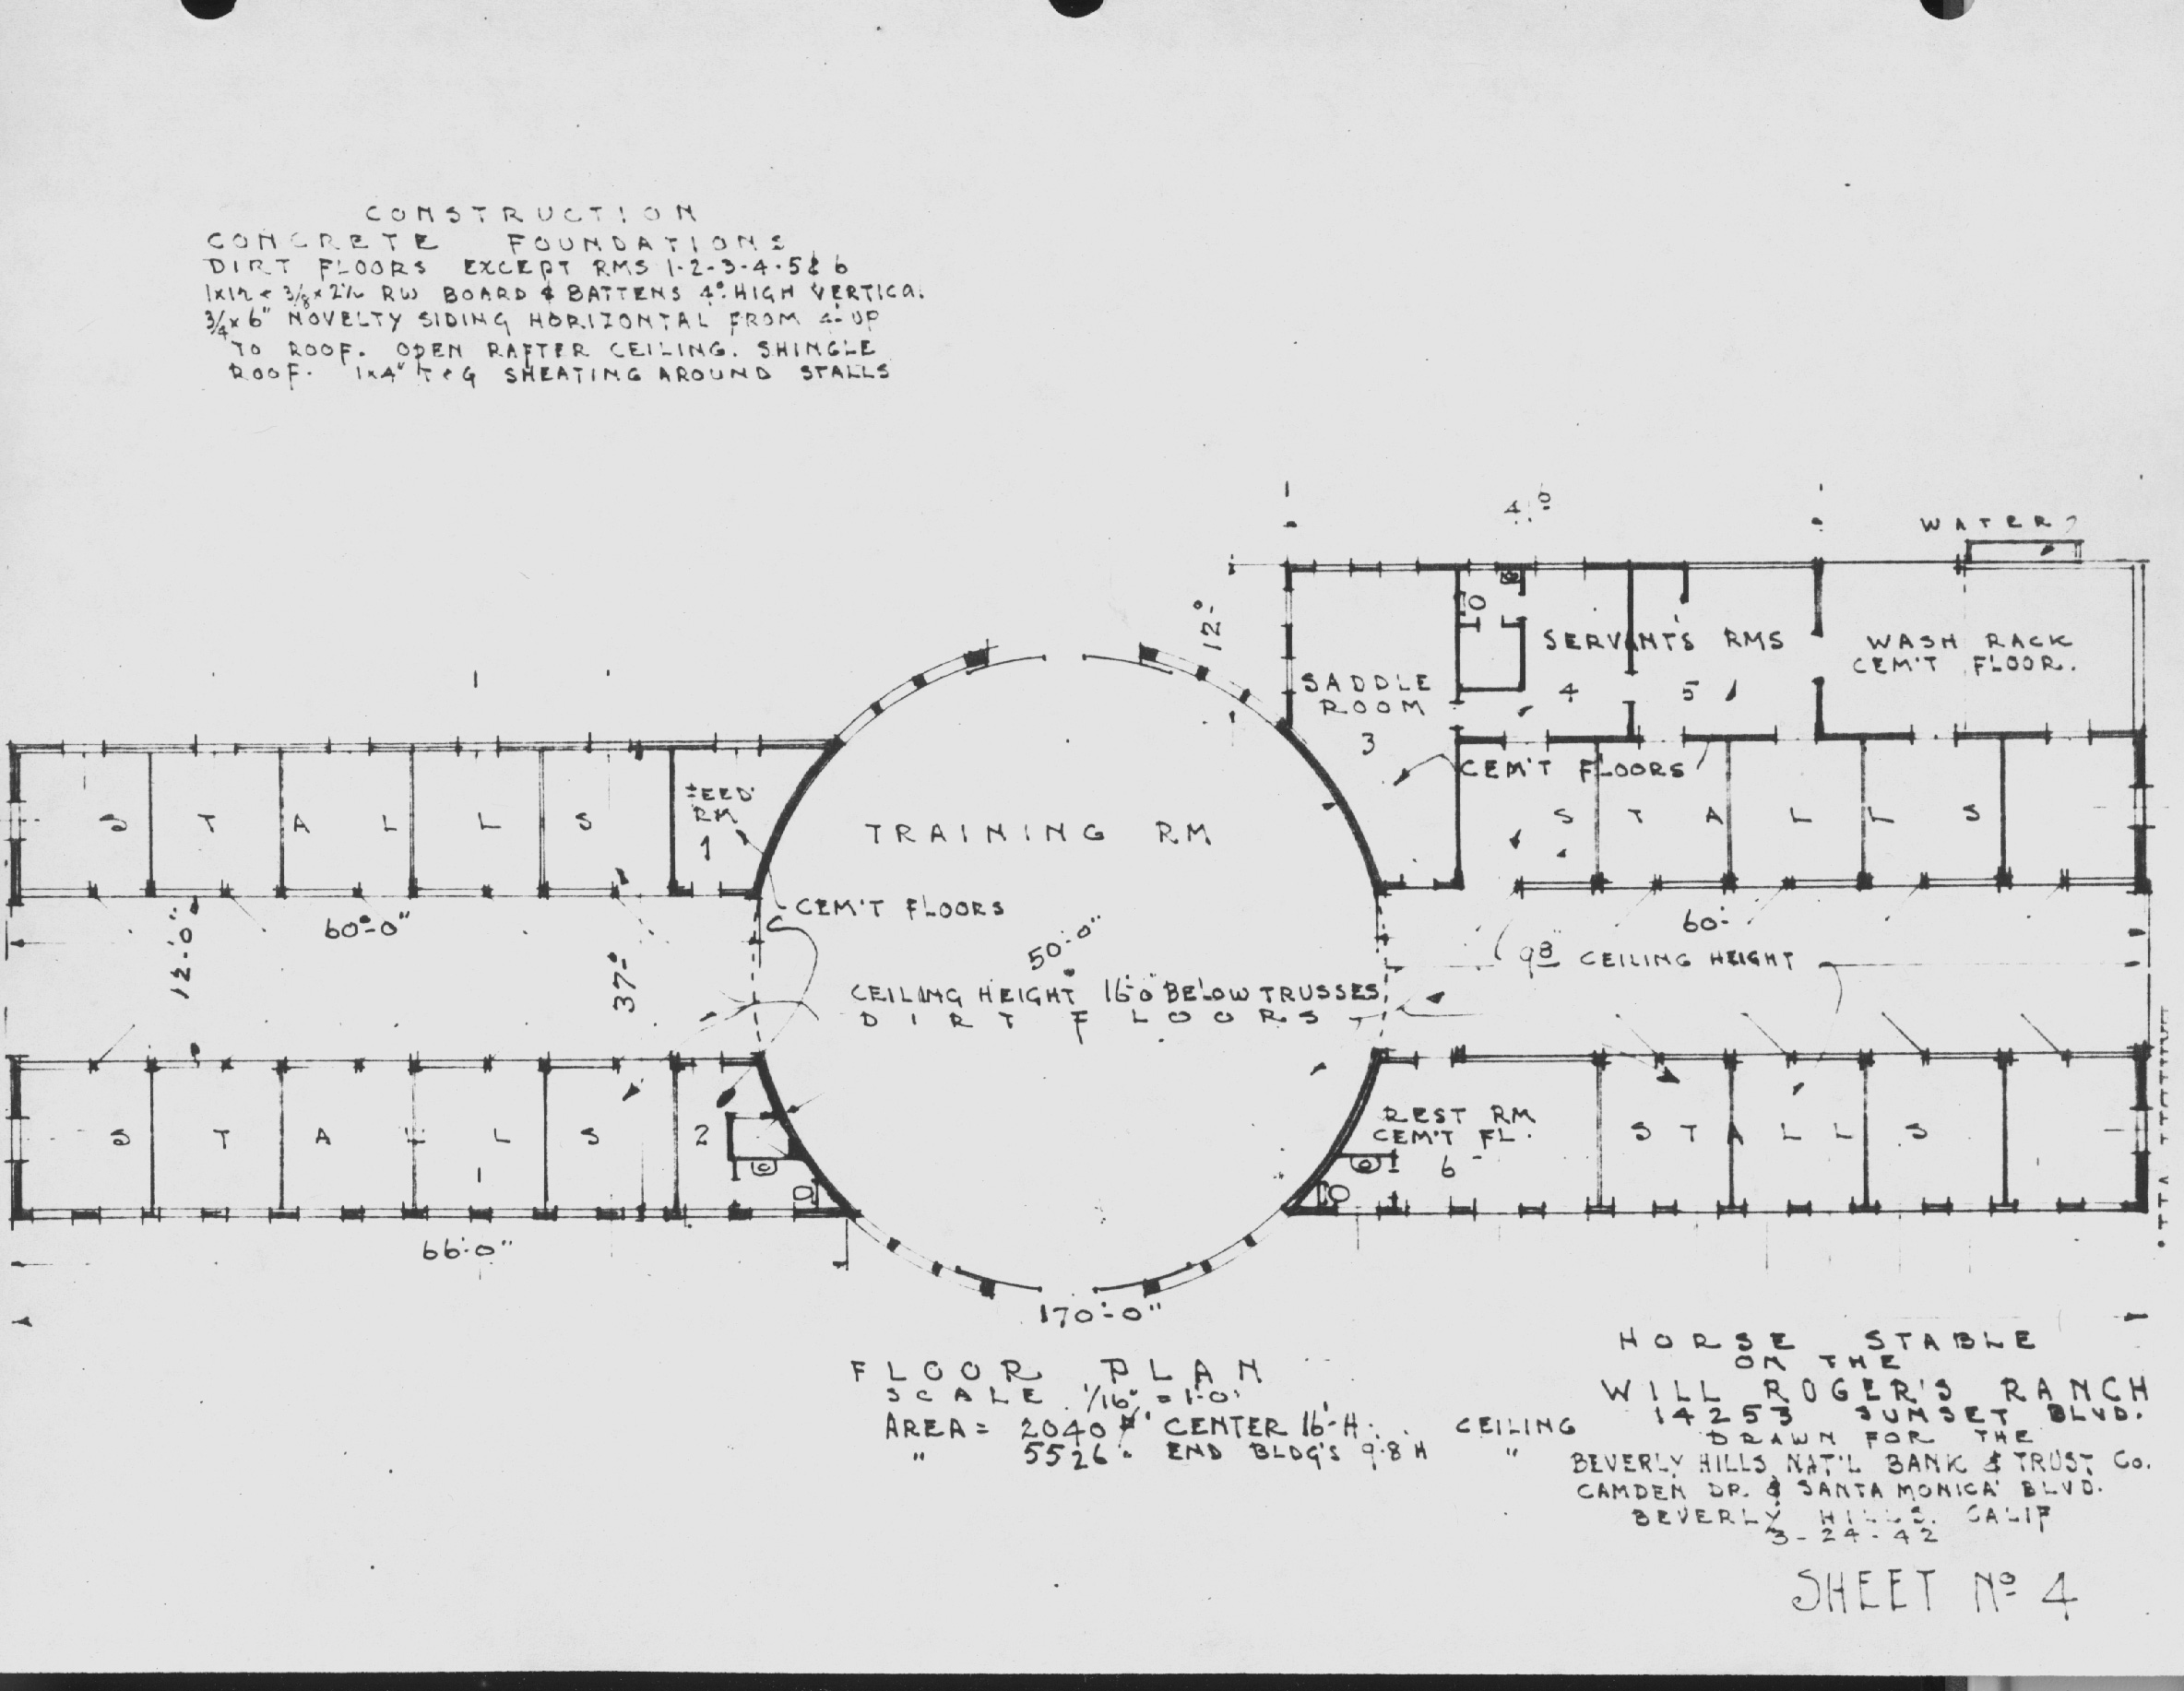 Will Rogers's Stable Blueprint showing dimensions of central rotunda.